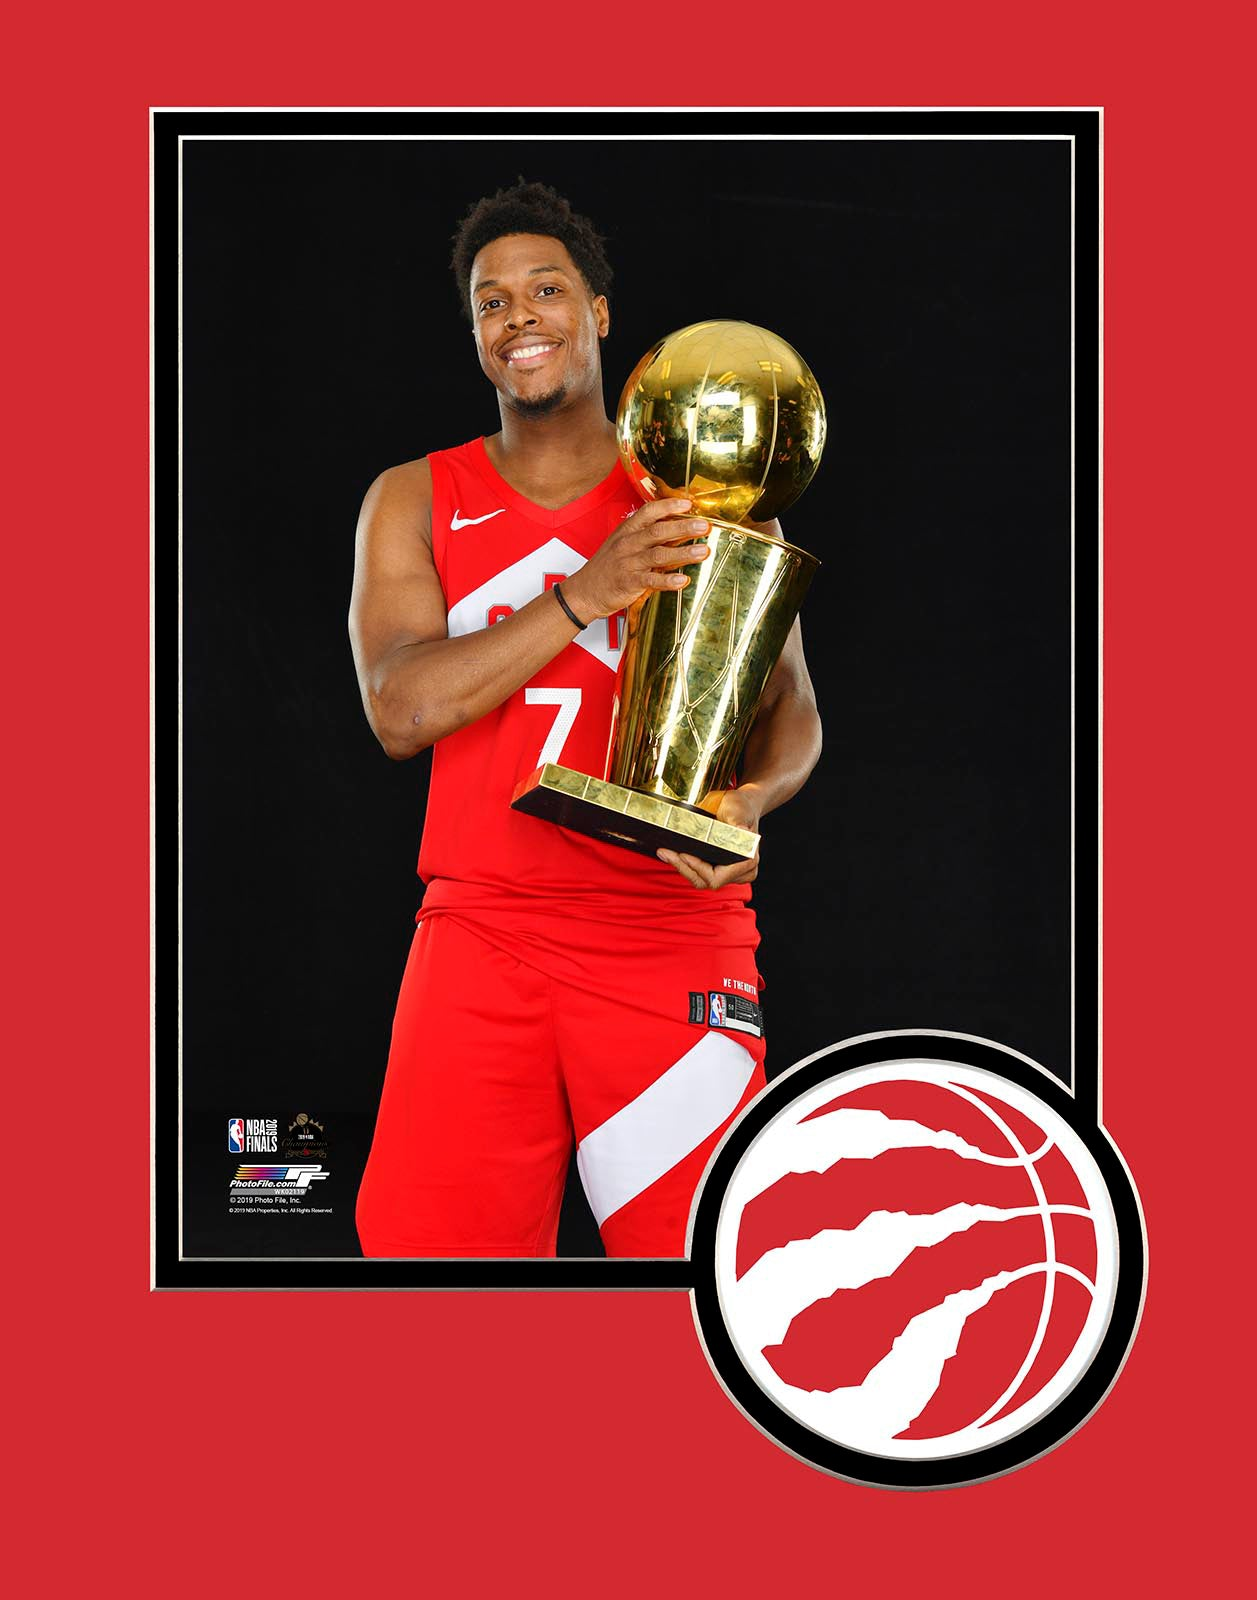 Raptors 2019 NBA Champs Kyle Lowry Trophy Matted 8x10 Photo